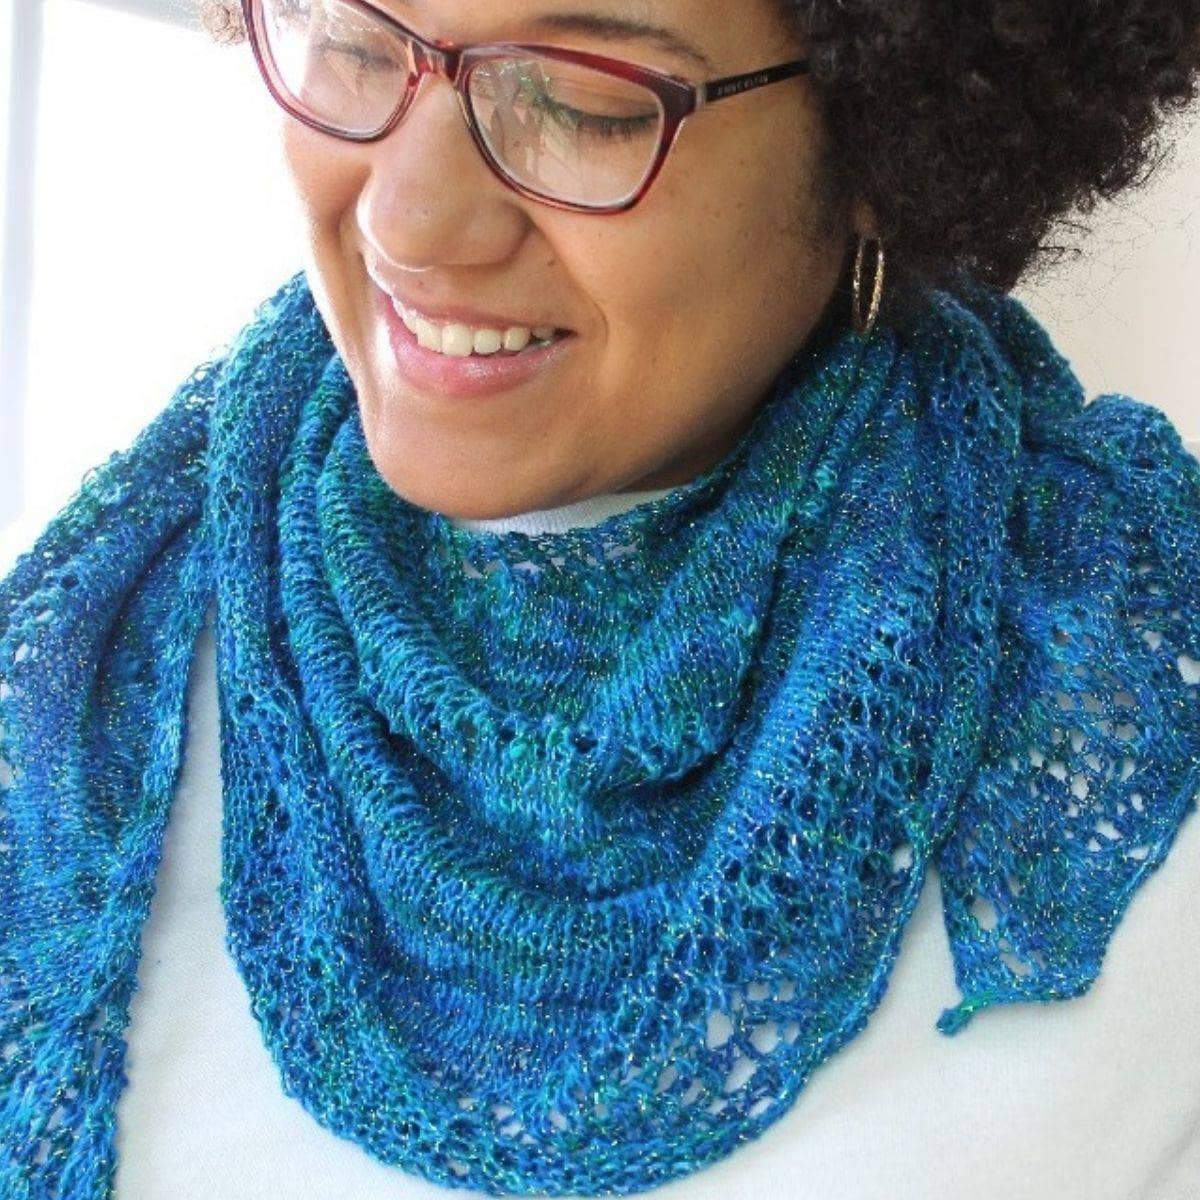 Enchantress Shawl Knitting Kit-Darn Good Yarn-superbulky